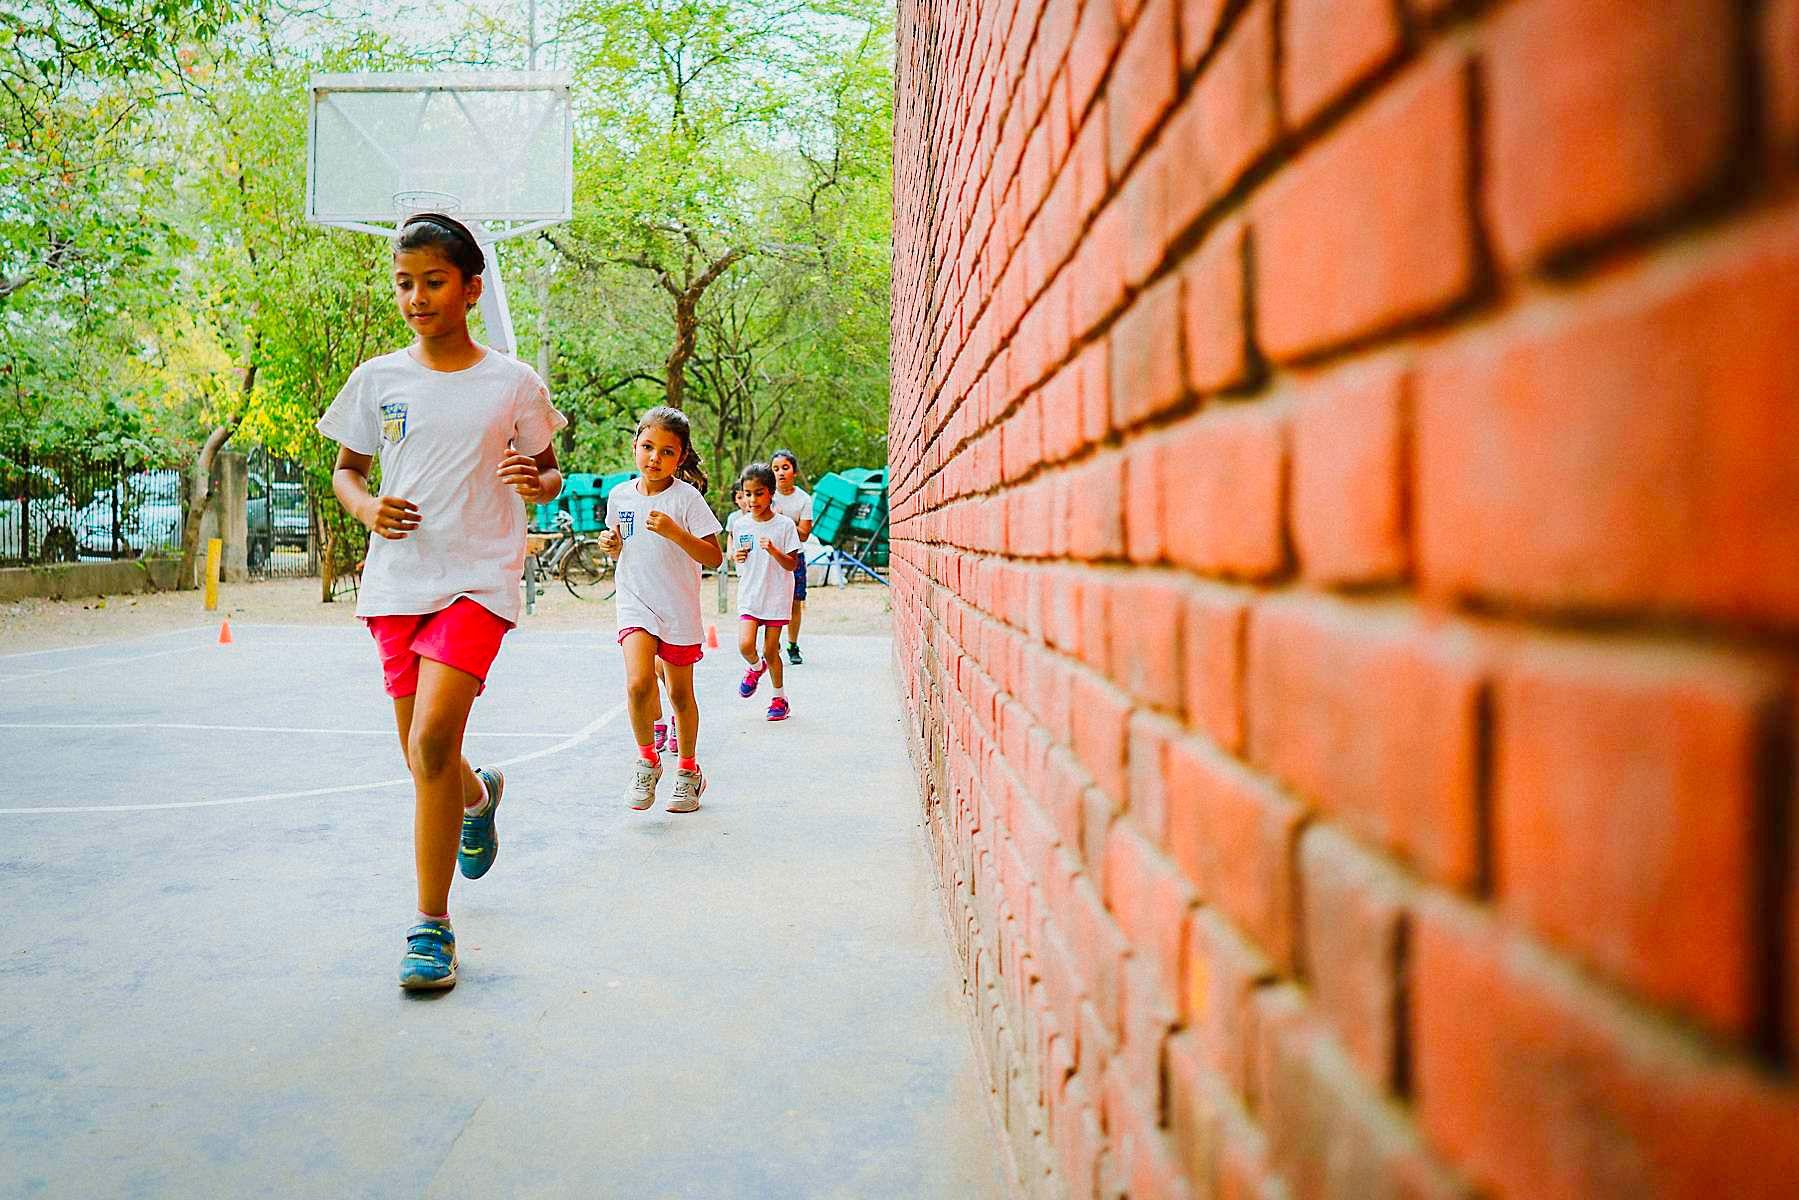 The Art of Sport- Delhi- startup-empowering girls though sports